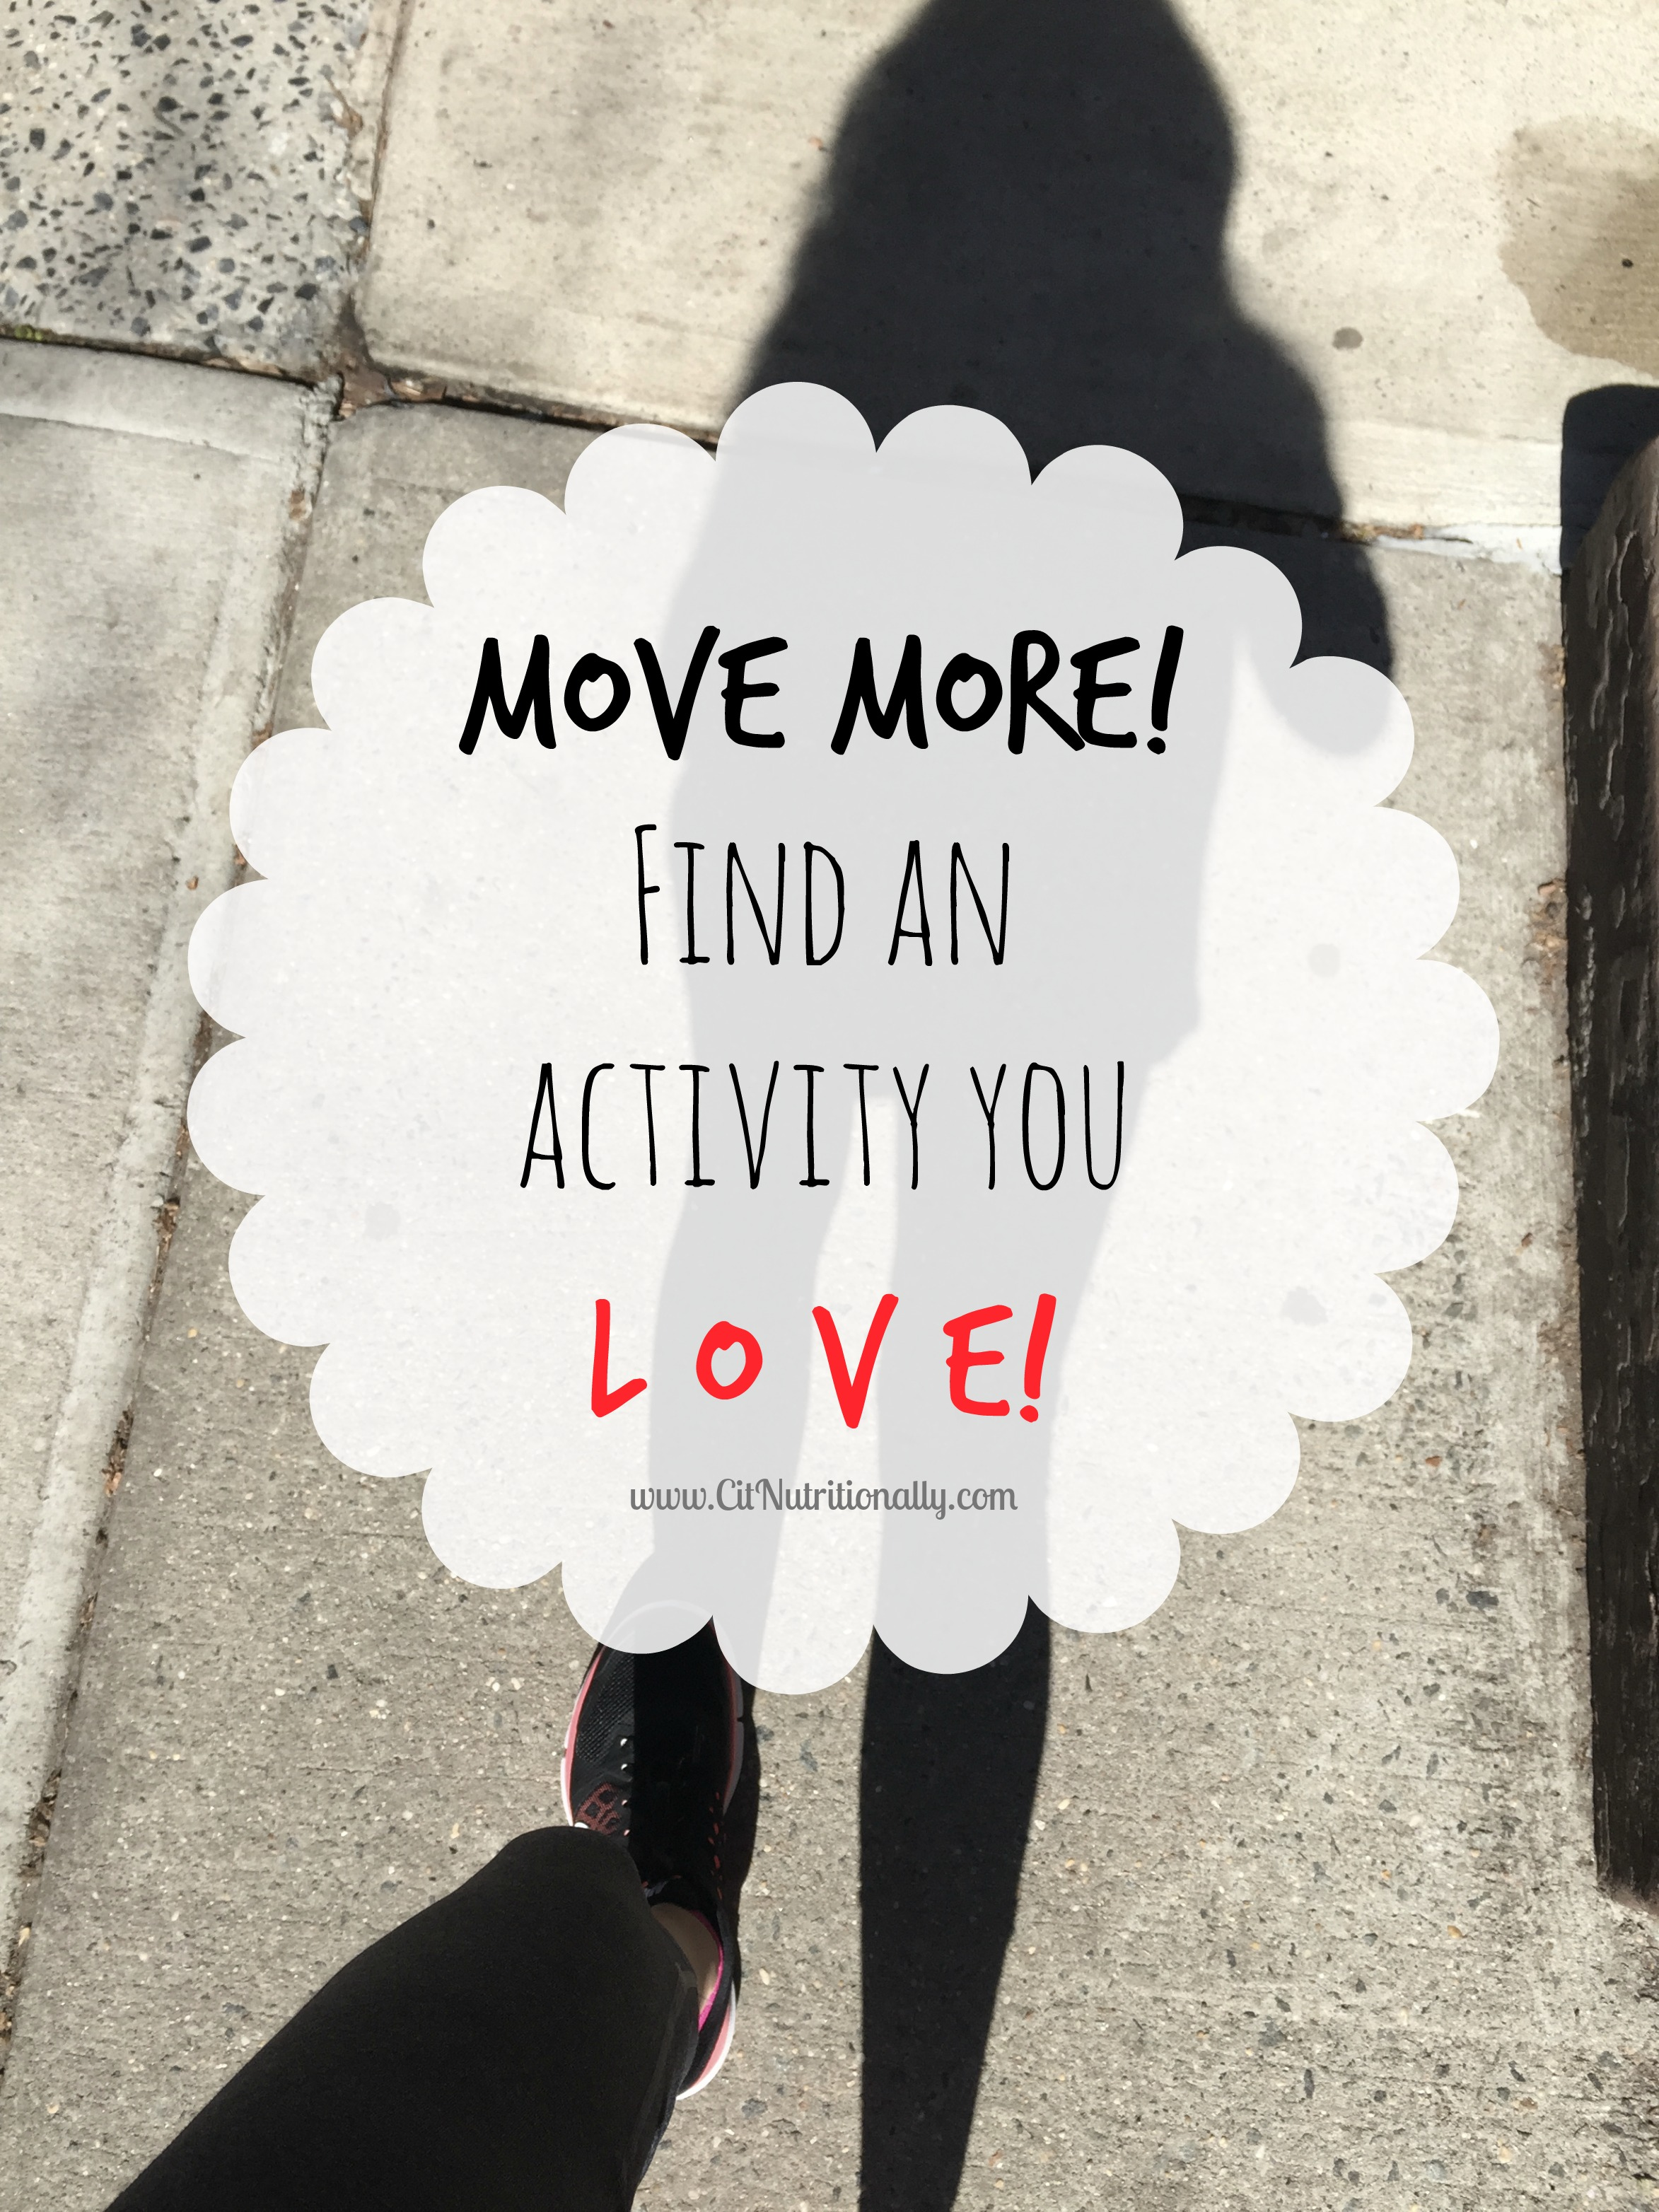 Moving more in 2017: Find an activity you love! | C it Nutritionally